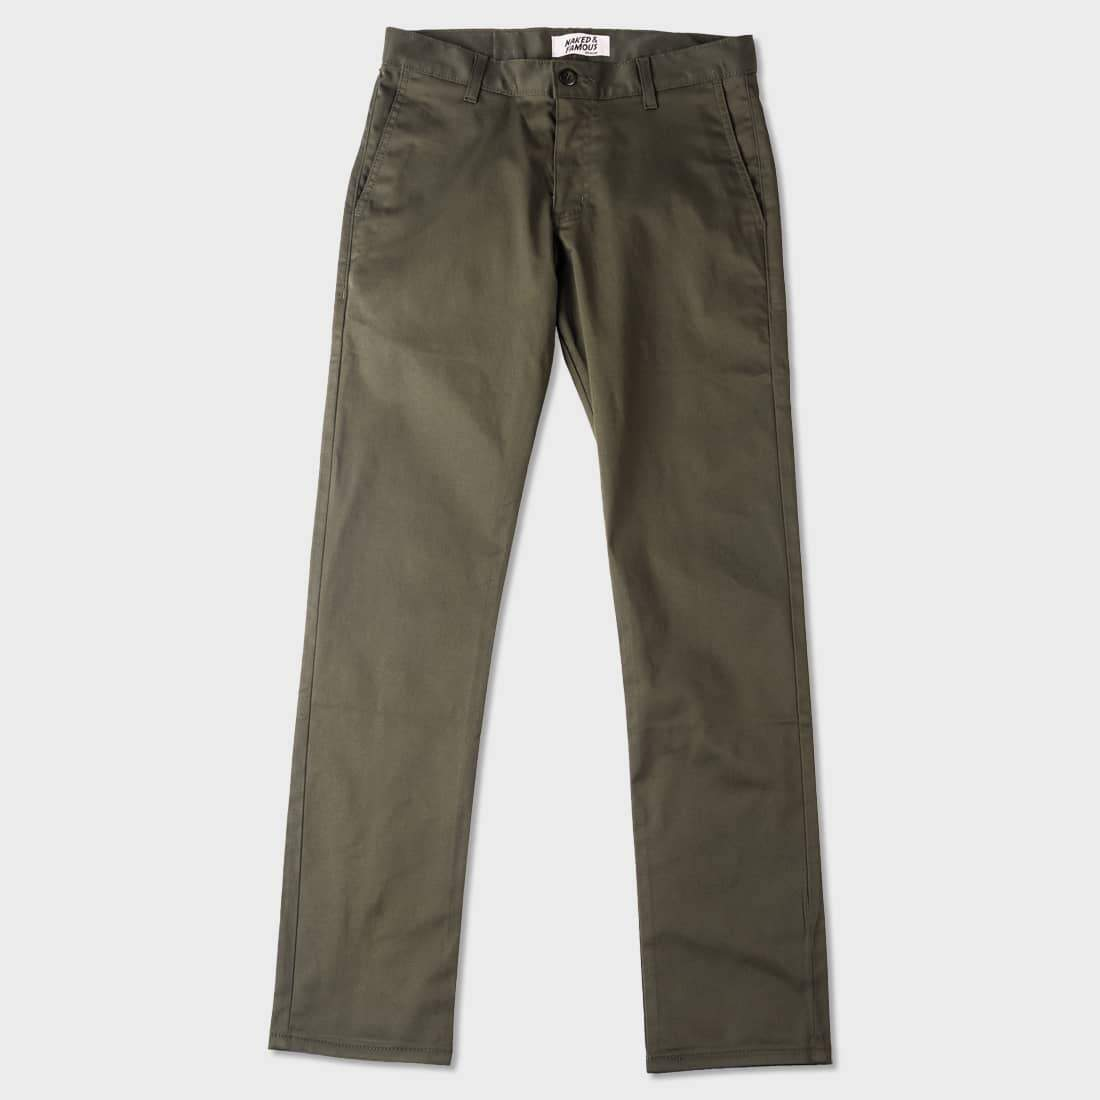 Naked & Famous Slim Chino Stretch Twill Khaki Green